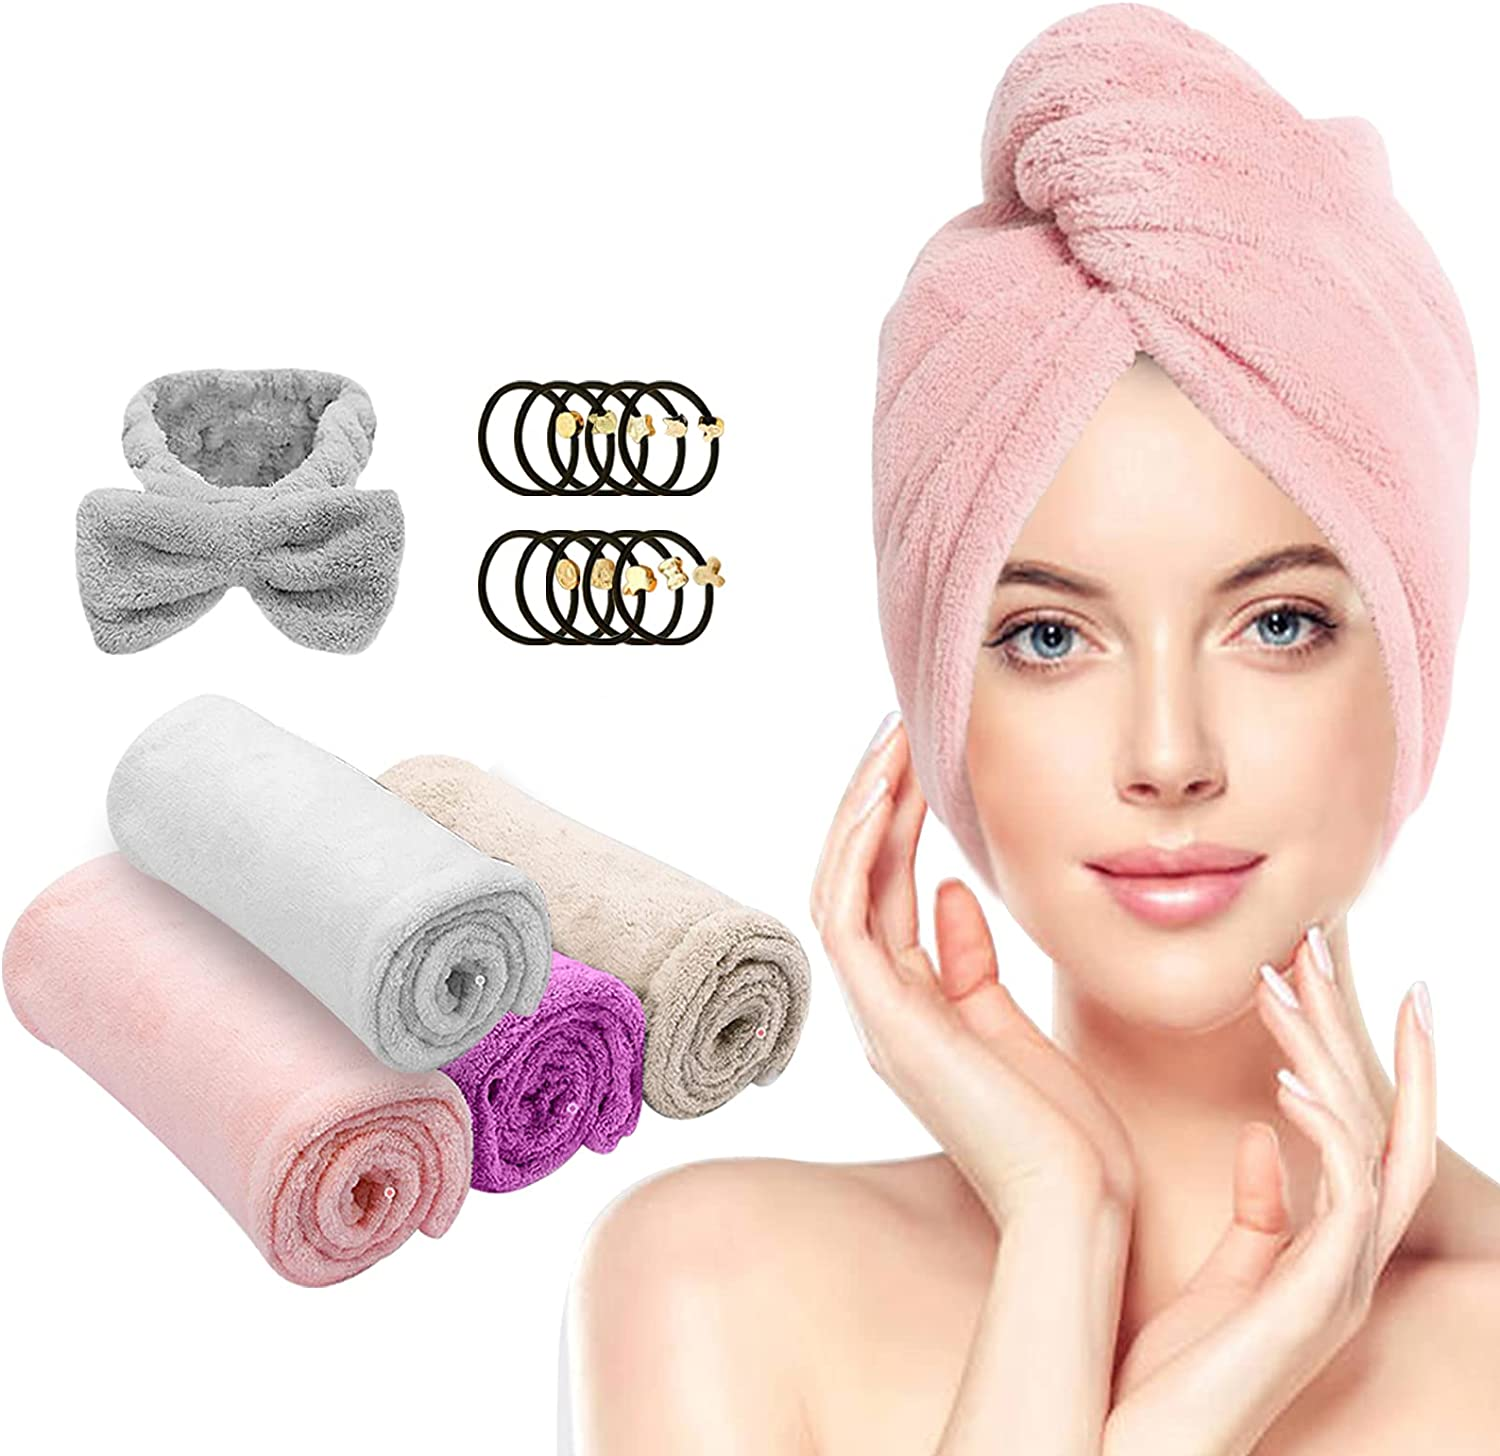 Farsaw Hair Towel Wrap, 4+1 Packs Microfiber Hair Towel Hair Turbans for Wet Hair, Ultra Absorbent Fast Hair Drying Towel for Women, Extra 10 PCS Gifts: Kitchen & Dining